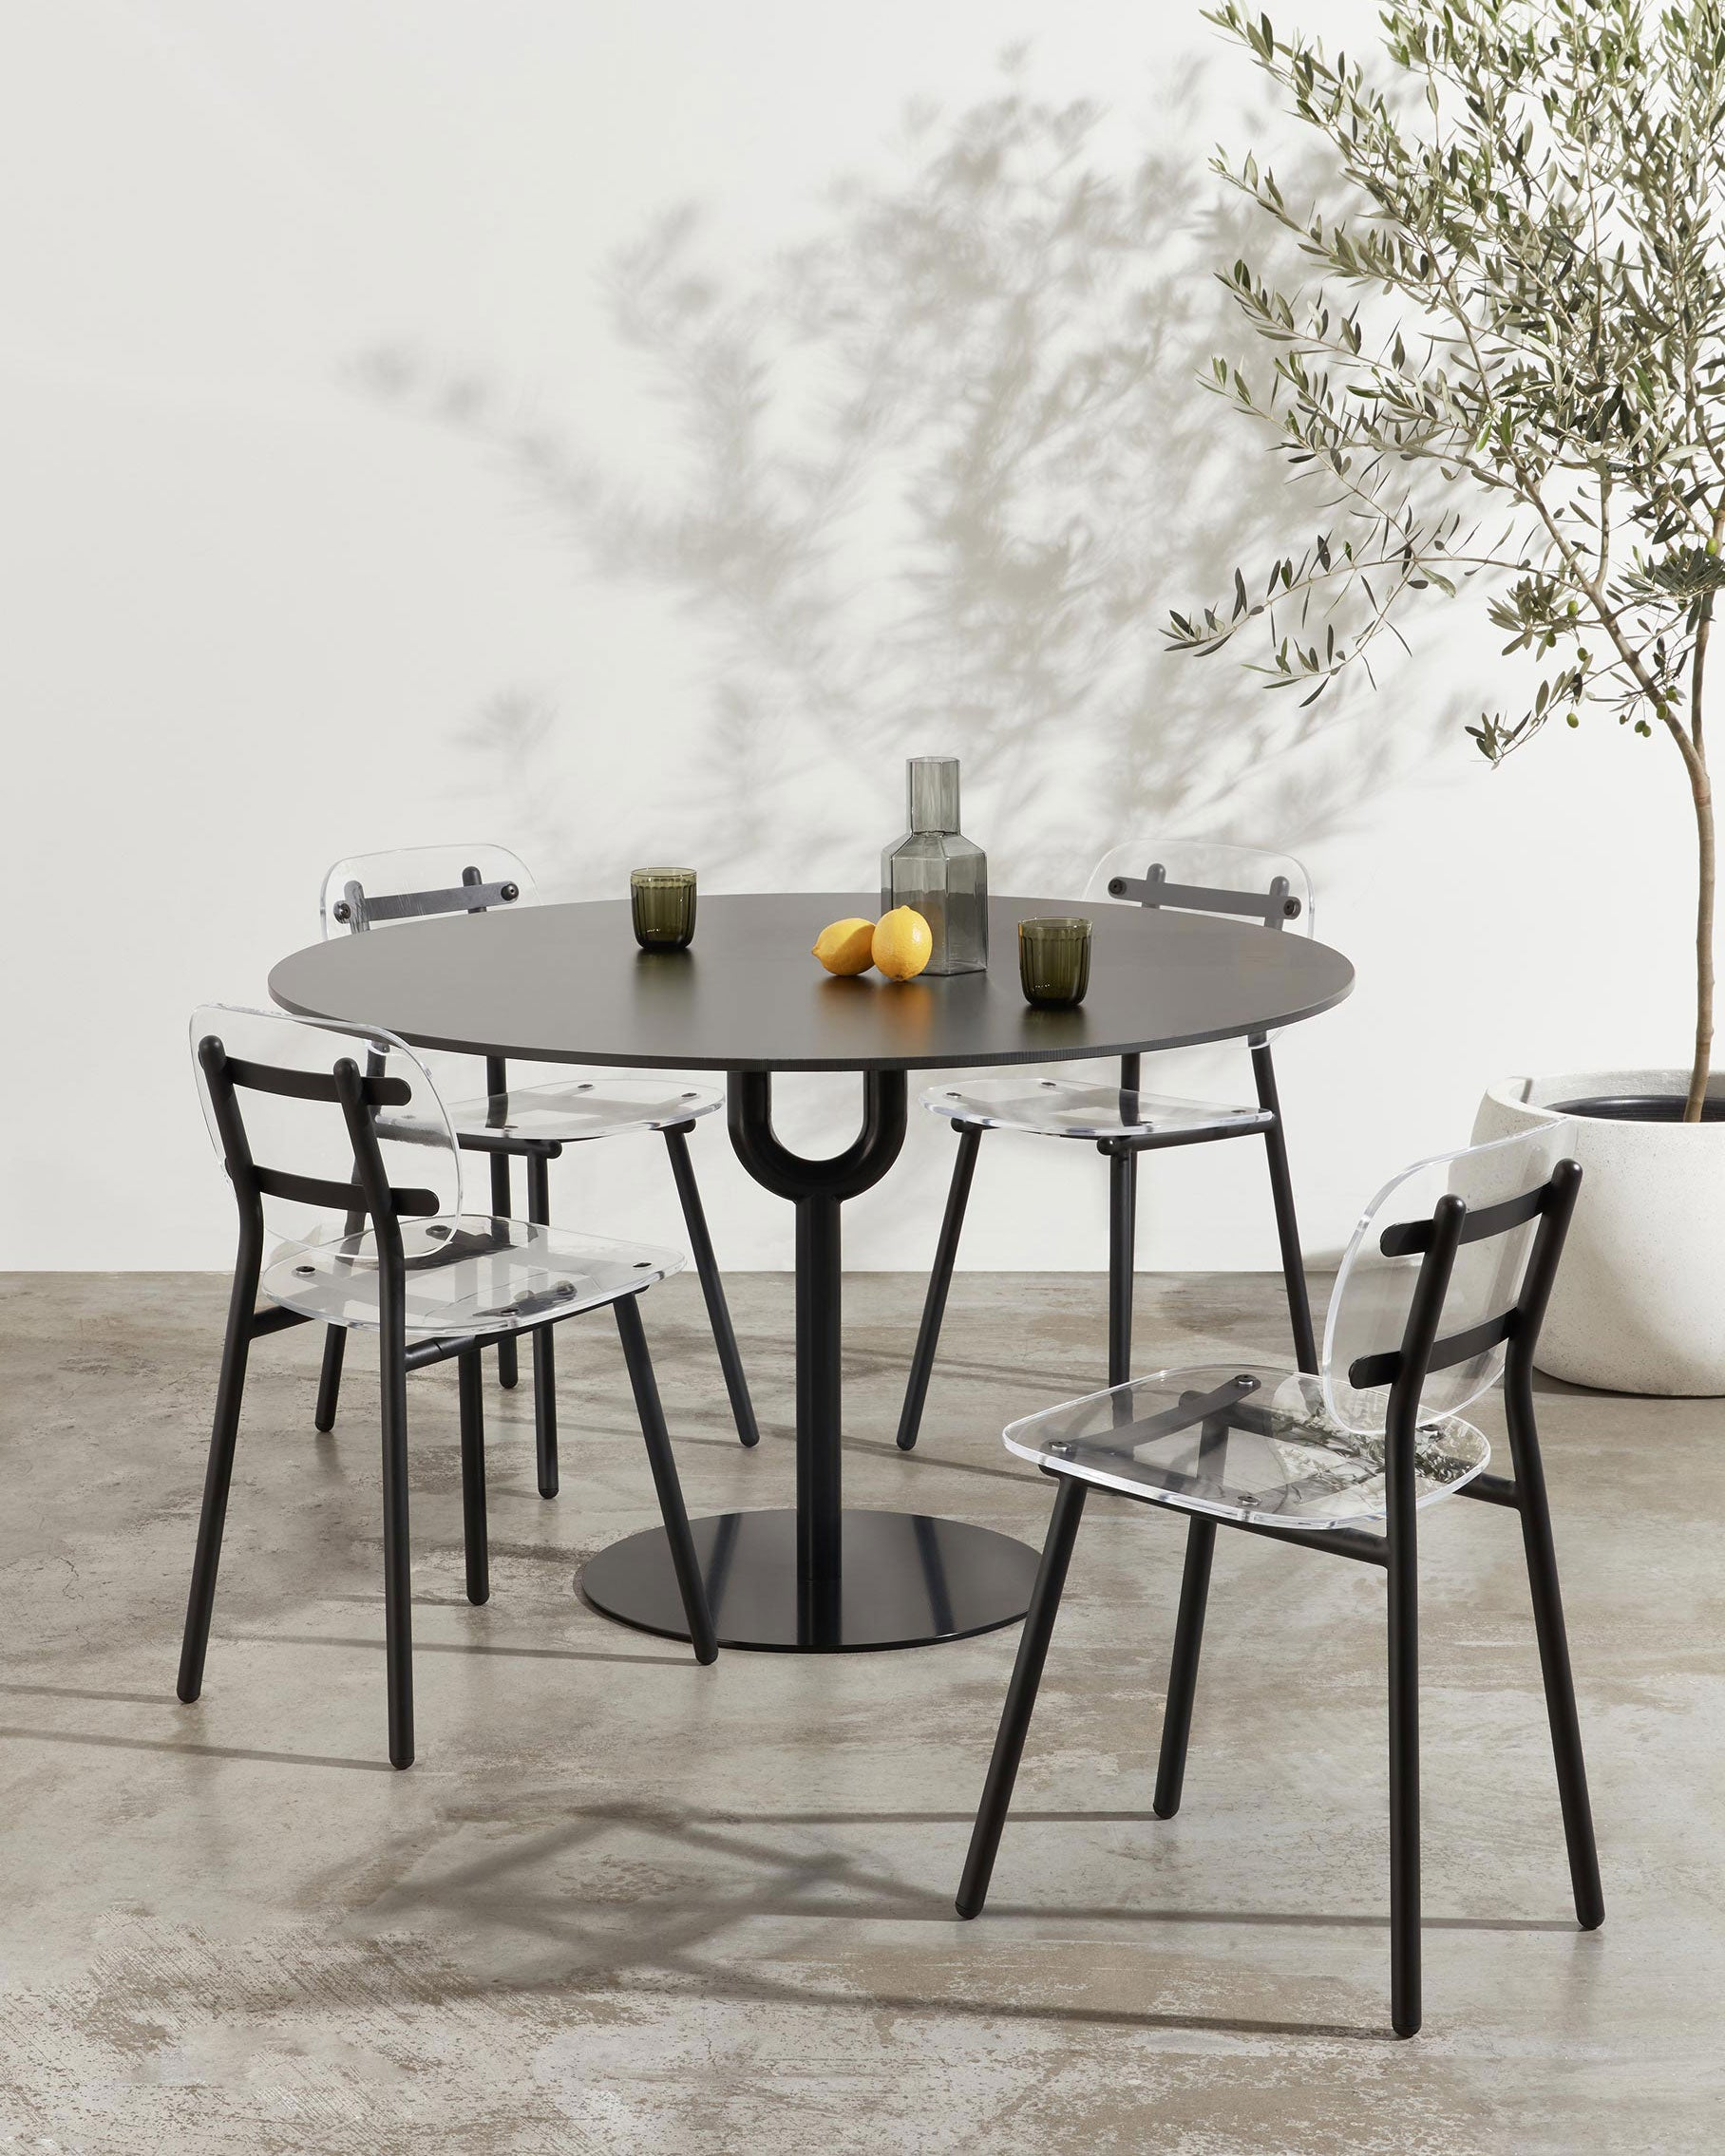 Piper Pedestal Table | Indoor Outdoor Steel Dining Table | GibsonKarlo | DesignByThem